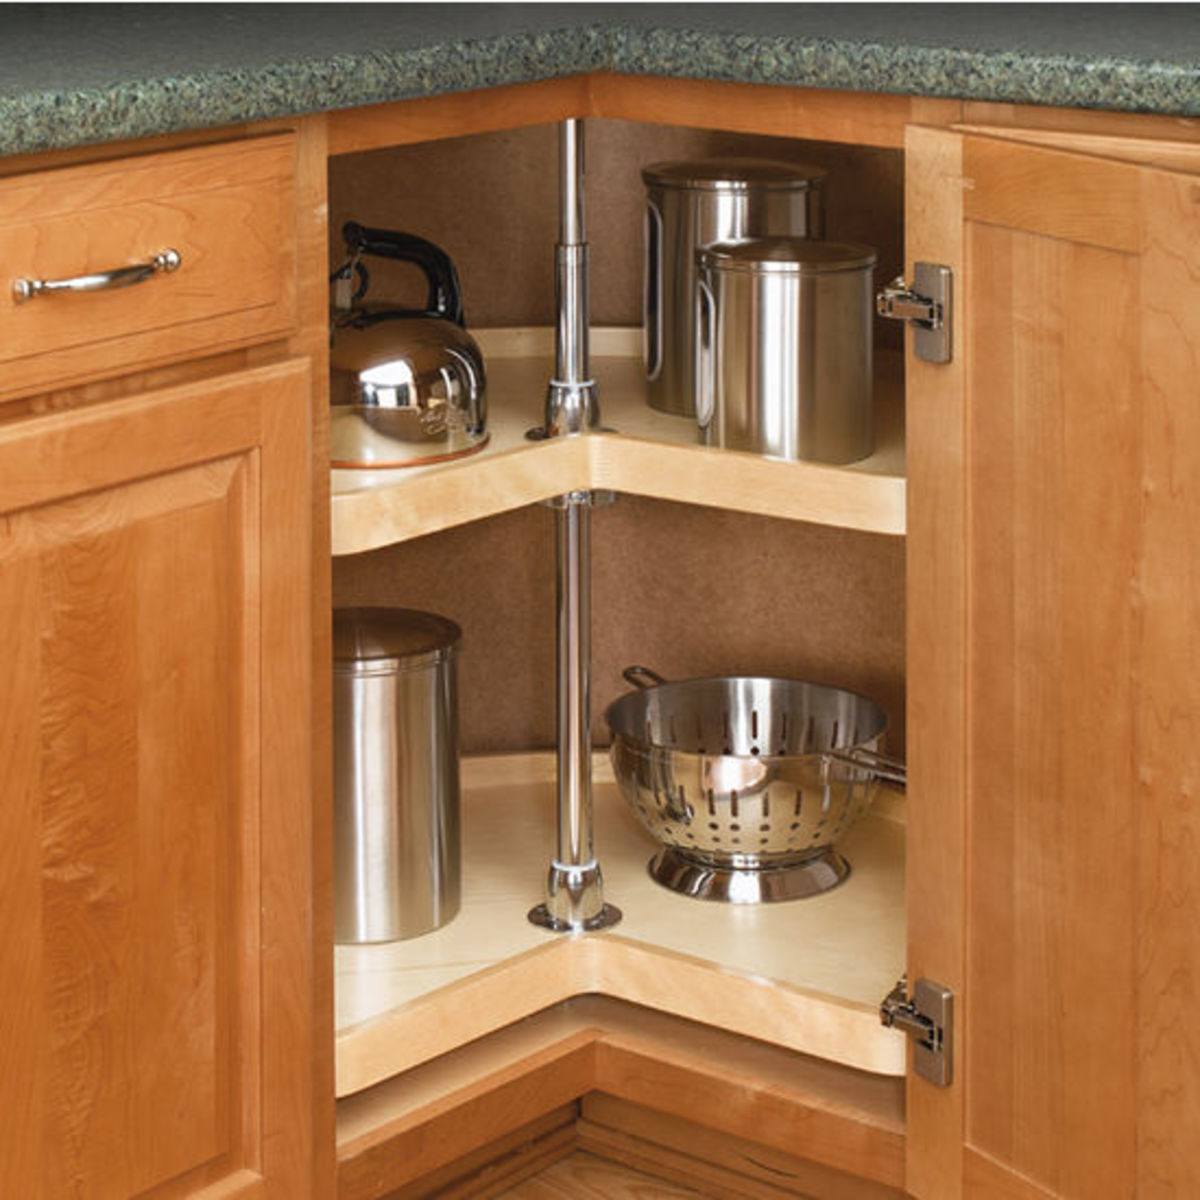 A corner cabinet turntable allows for easy access.